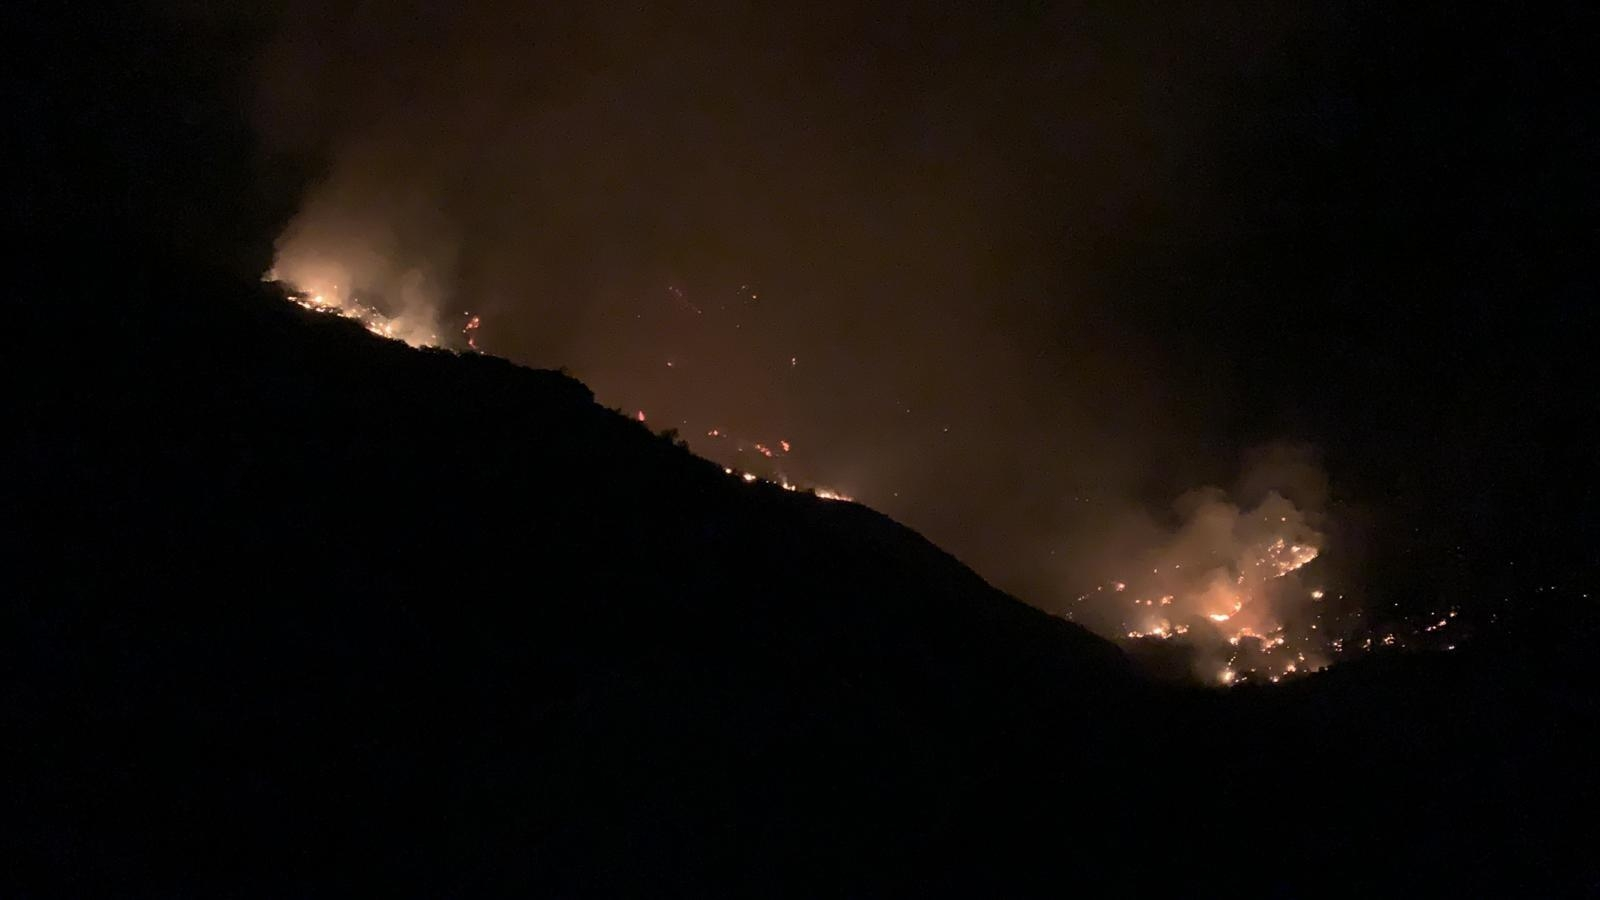 <p>In this photo issued by Cabildo de Gran Canaria, flames from a forest fire burn in Tejada, on the Spanish Gran Canaria island on Tuesday Aug. 20, 2019. The wind dropped overnight in the Canary Islands, allowing firefighters to make progress Tuesday against Spain&#8217;s biggest wildfire so far this year. (Cabildo de Gran Canaria Via AP)</p>